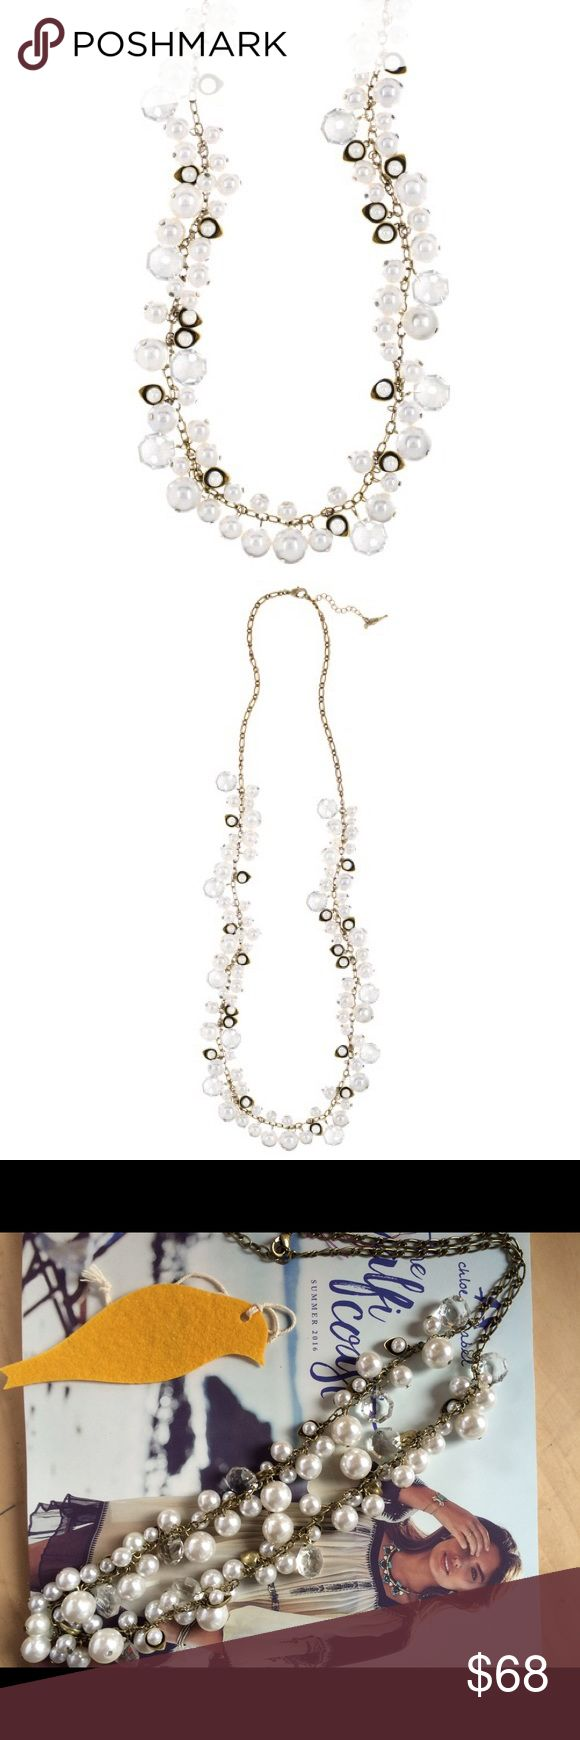 """NWT Chloe+Isabel Pearl + Crystal Necklace NWT Chloe+Isabel Pearl and Crystal Drops Long Necklace.  Single strand of multi-sized faux pearls, lotus-inspired metal castings, and round clear crystals on an antique brass chain.  Hangs from lobster clasp with 2"""" extender and c+i bird logo tag.   Brass ox plated Nickel-free 32"""" approx length Lobster clasp with 2"""" extender Chloe + Isabel Jewelry Necklaces"""